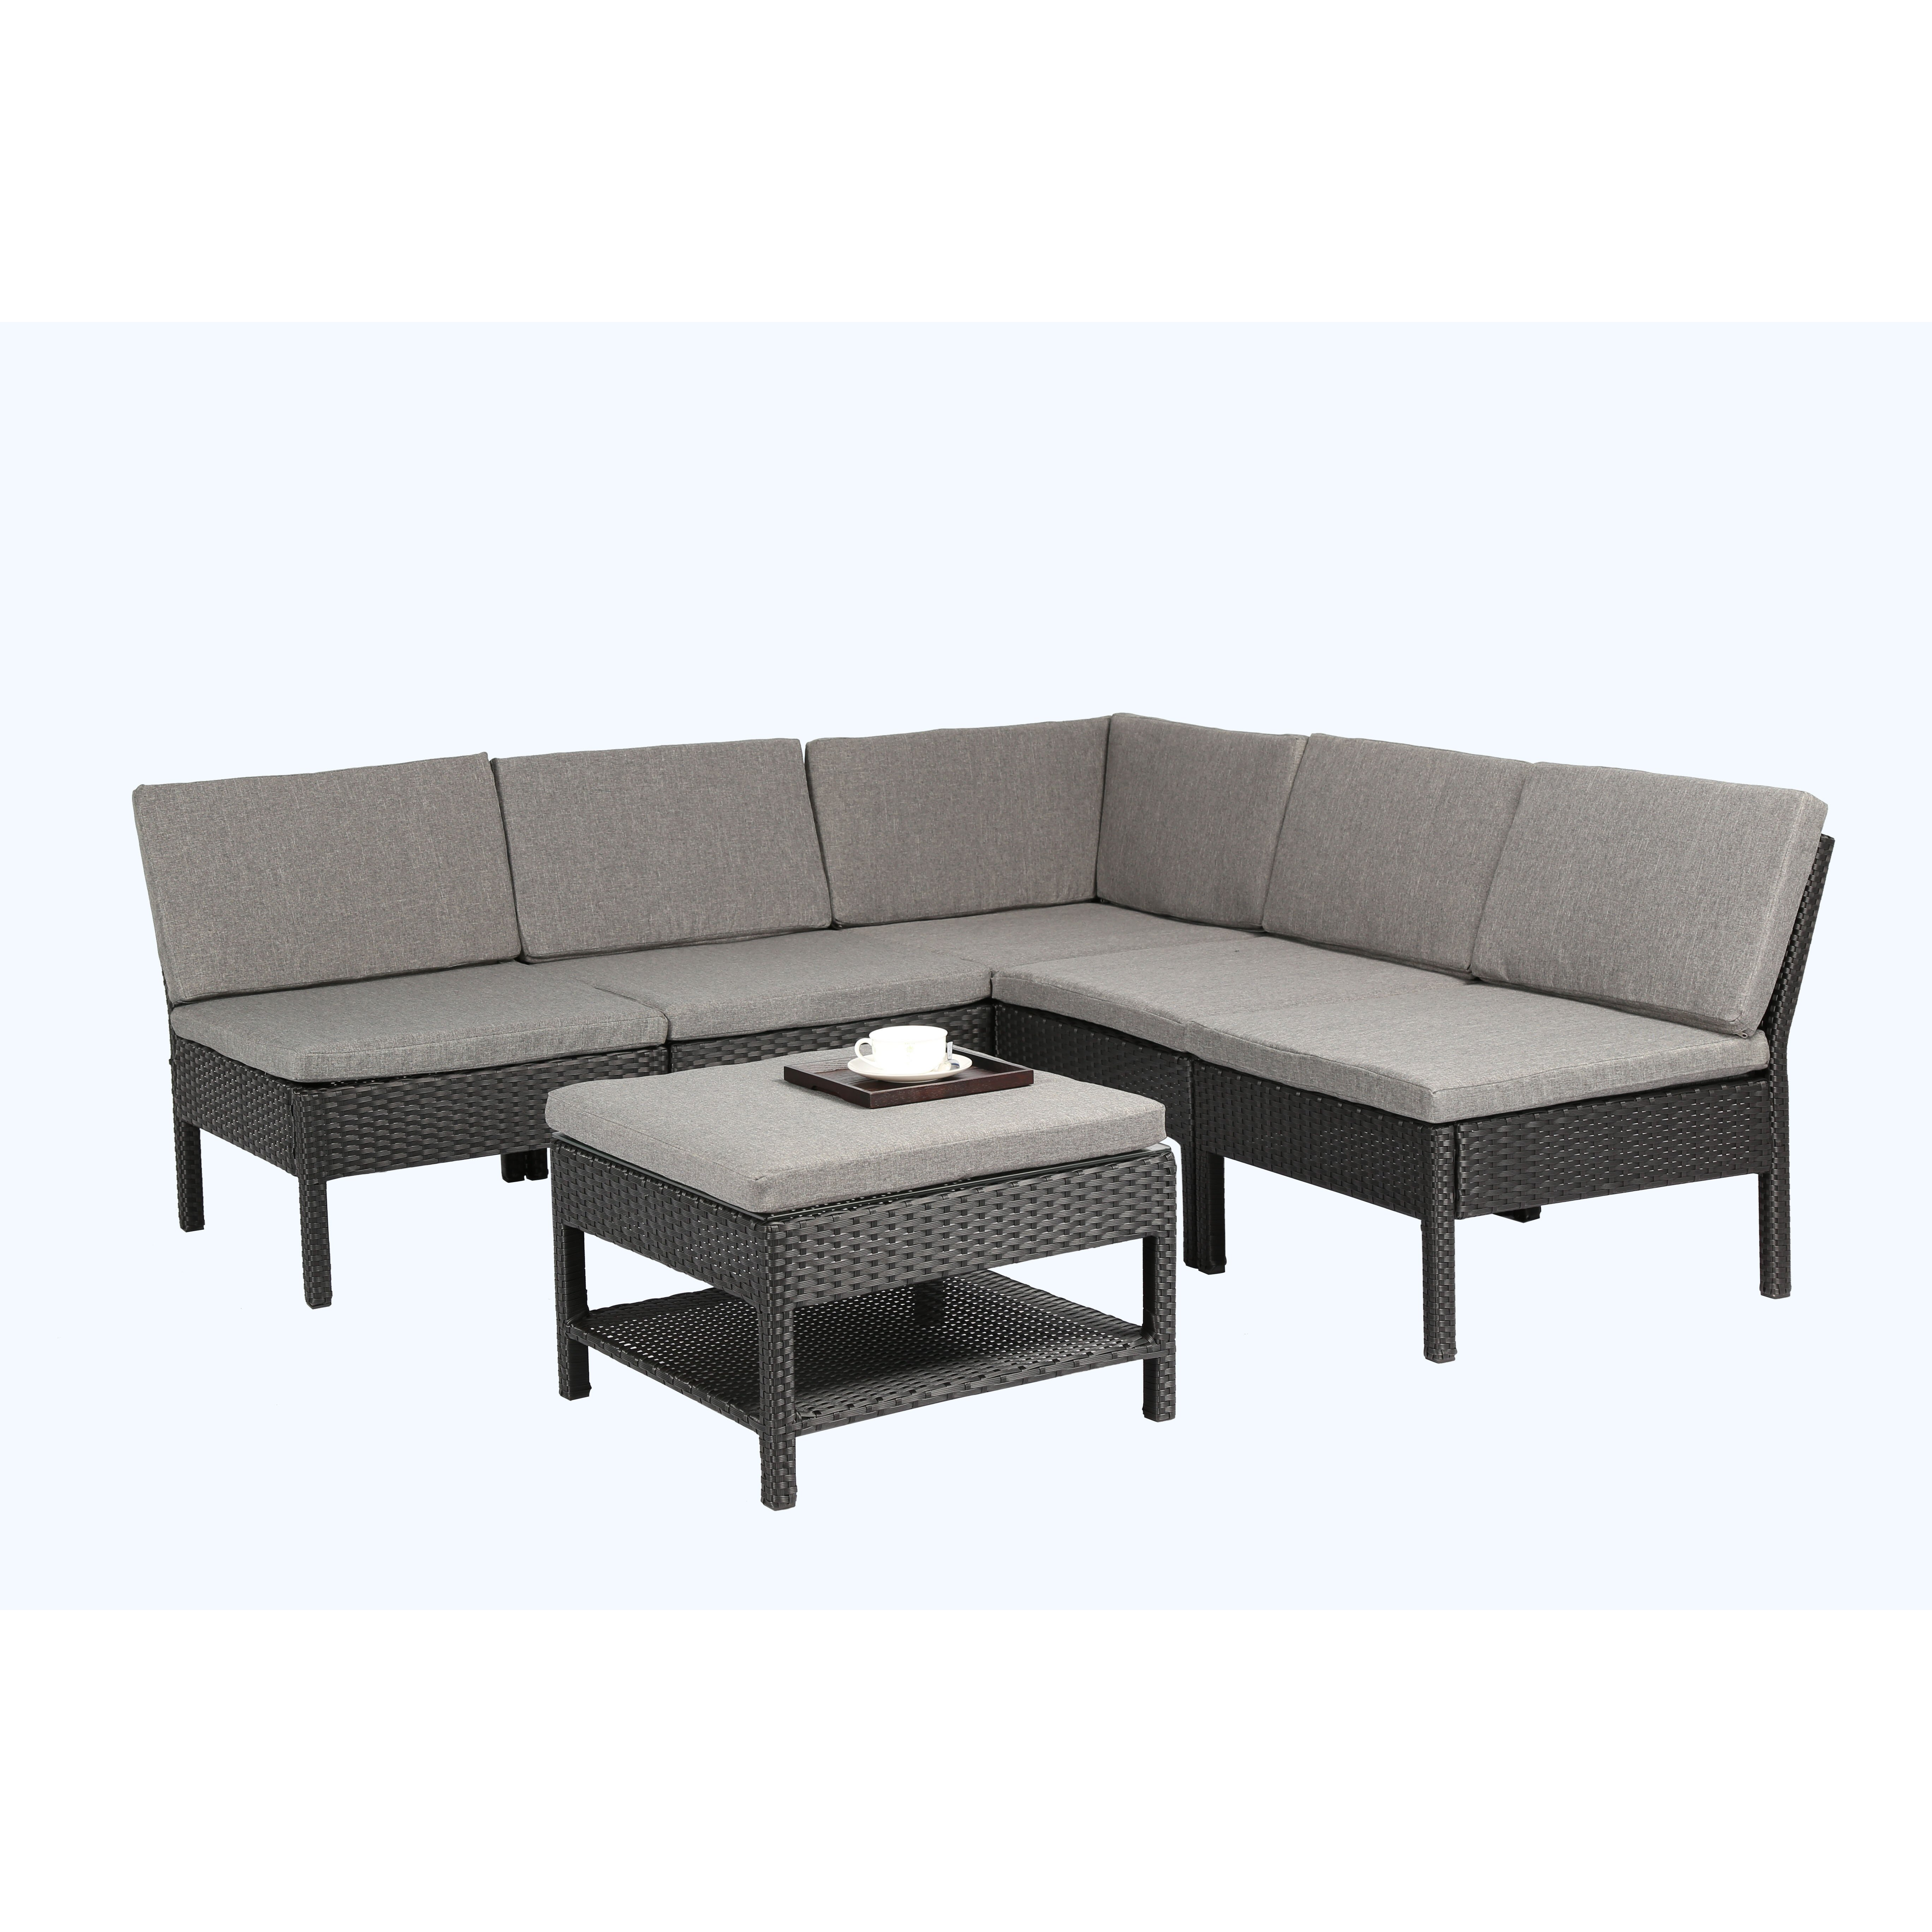 Baner Garden Complete Patio Garden 6 Piece Deep Seating. Outdoor Furniture Seat Fabric. Patio Swing Seat Cover Replacement. Patio Furniture Distributors Outlet Dania Beach Fl. Zuo Vive Outdoor Furniture. Patio Furniture Pier One Canada. Garden Furniture Sale Uk Wooden. Diy Patio Table Makeover. Home Depot Greystone Patio Furniture